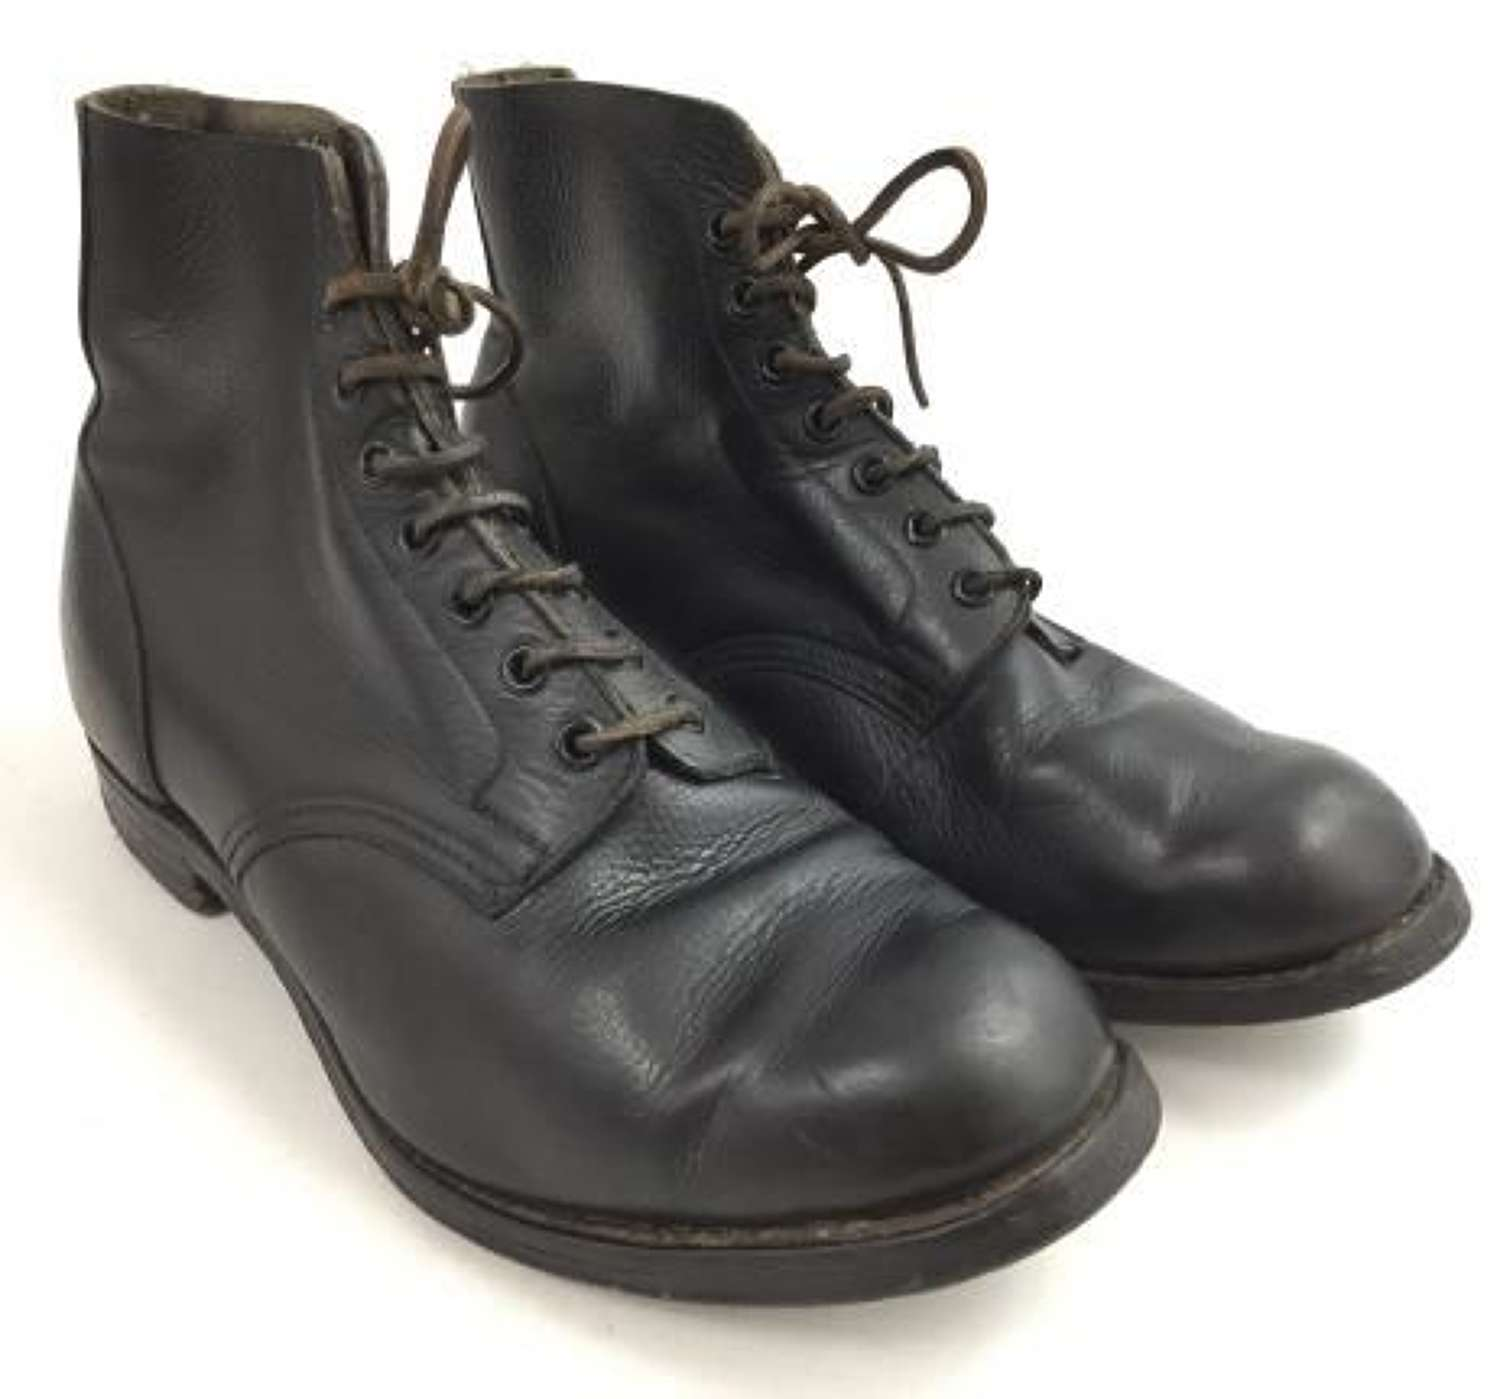 1945 Dated British Military Black Leather Boots by 'Wilson & Watson'